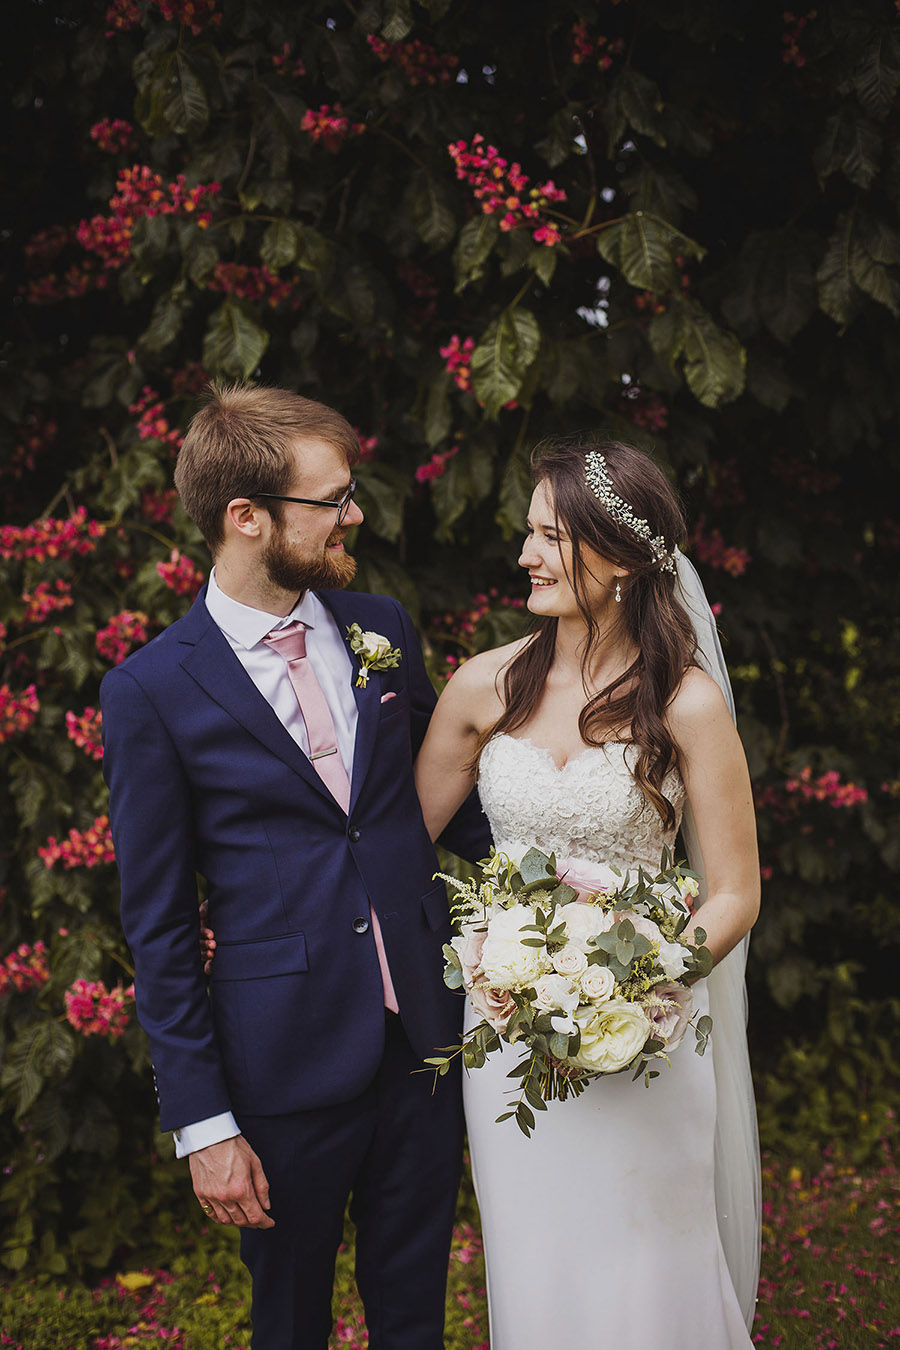 Relaxed outdoor wedding at Cott Farm Barn with images by Heather Birnie Photography on the English Wedding Blog (31)